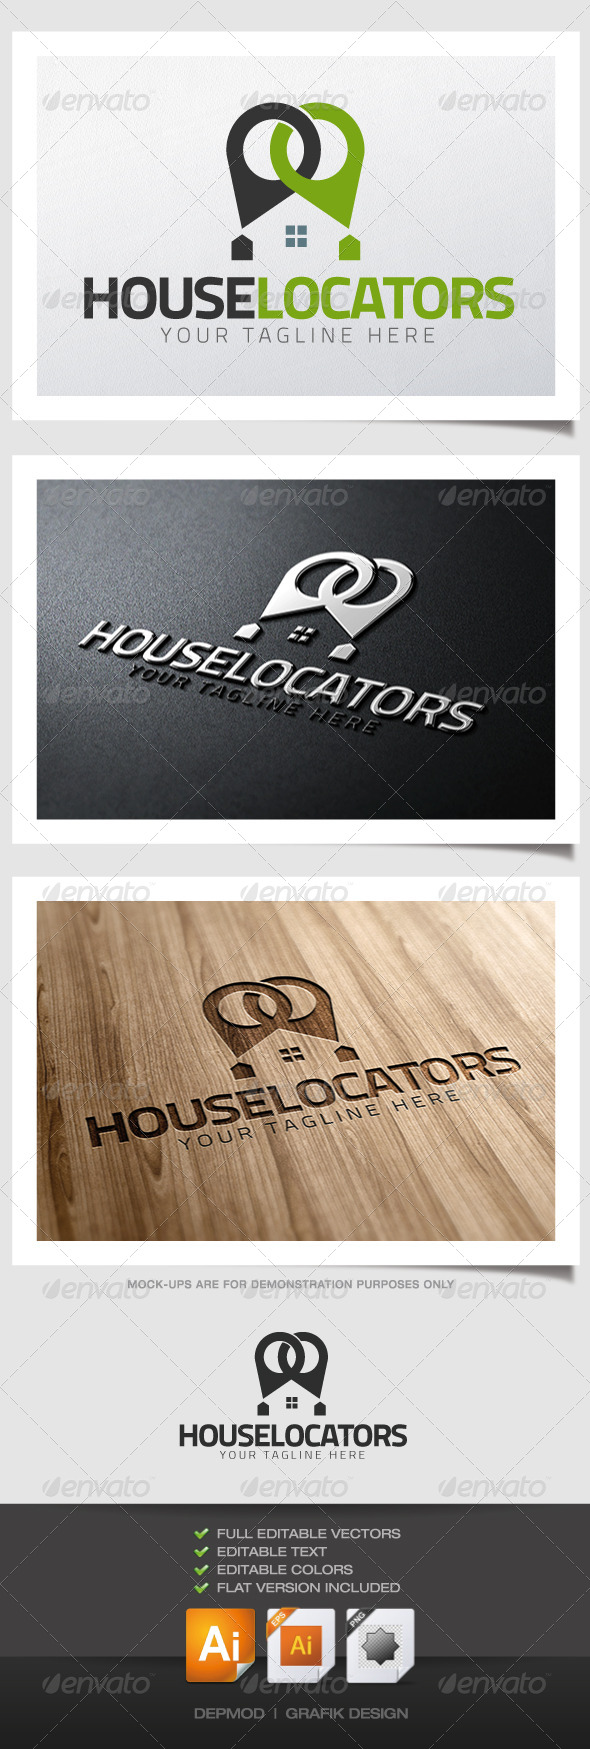 House Locators Logo - Symbols Logo Templates